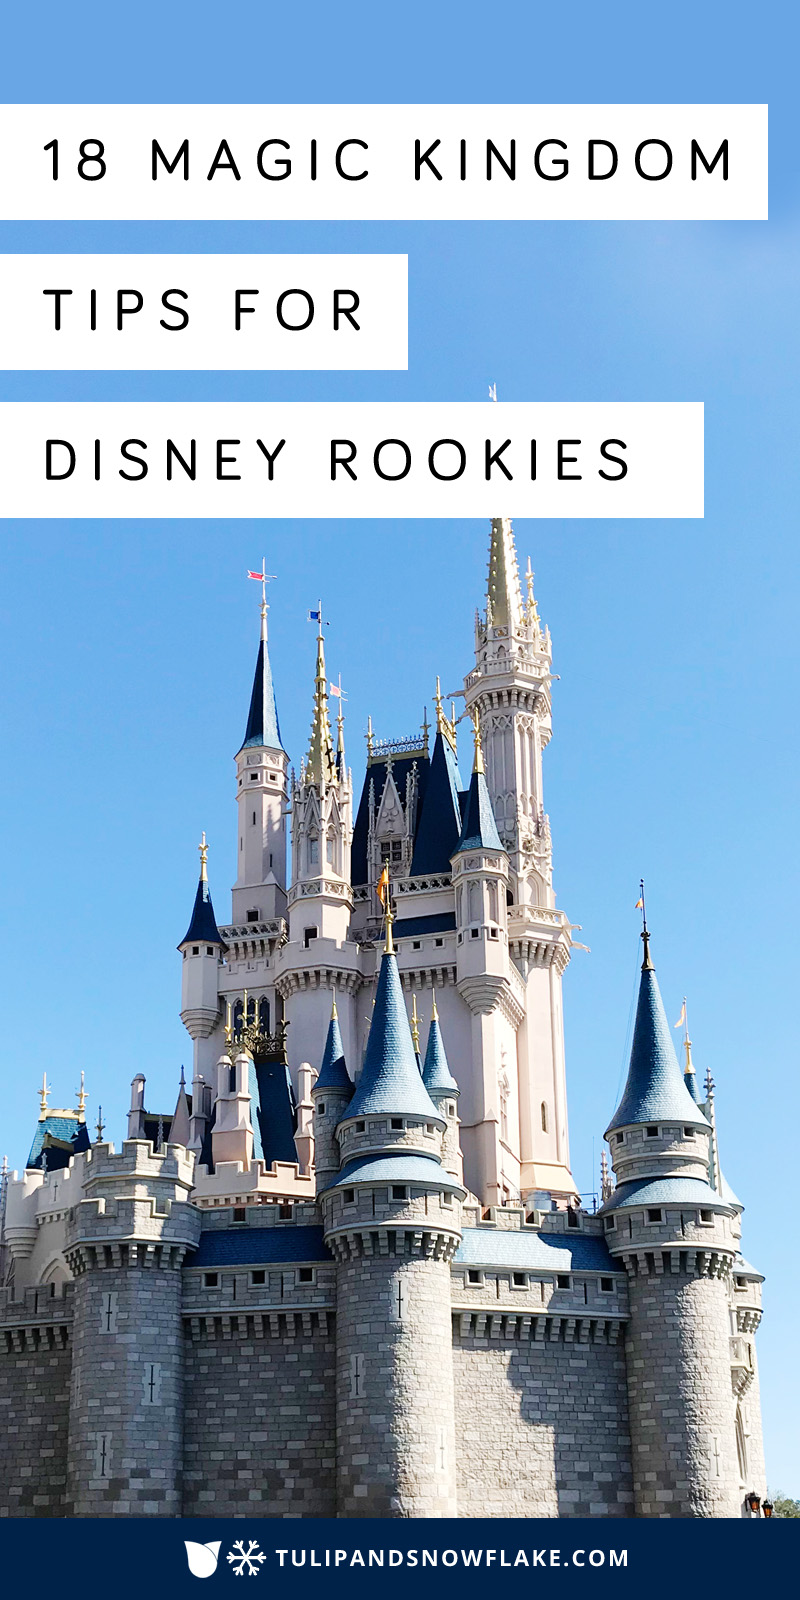 18 Magic Kingdom Tips for Disney Rookies